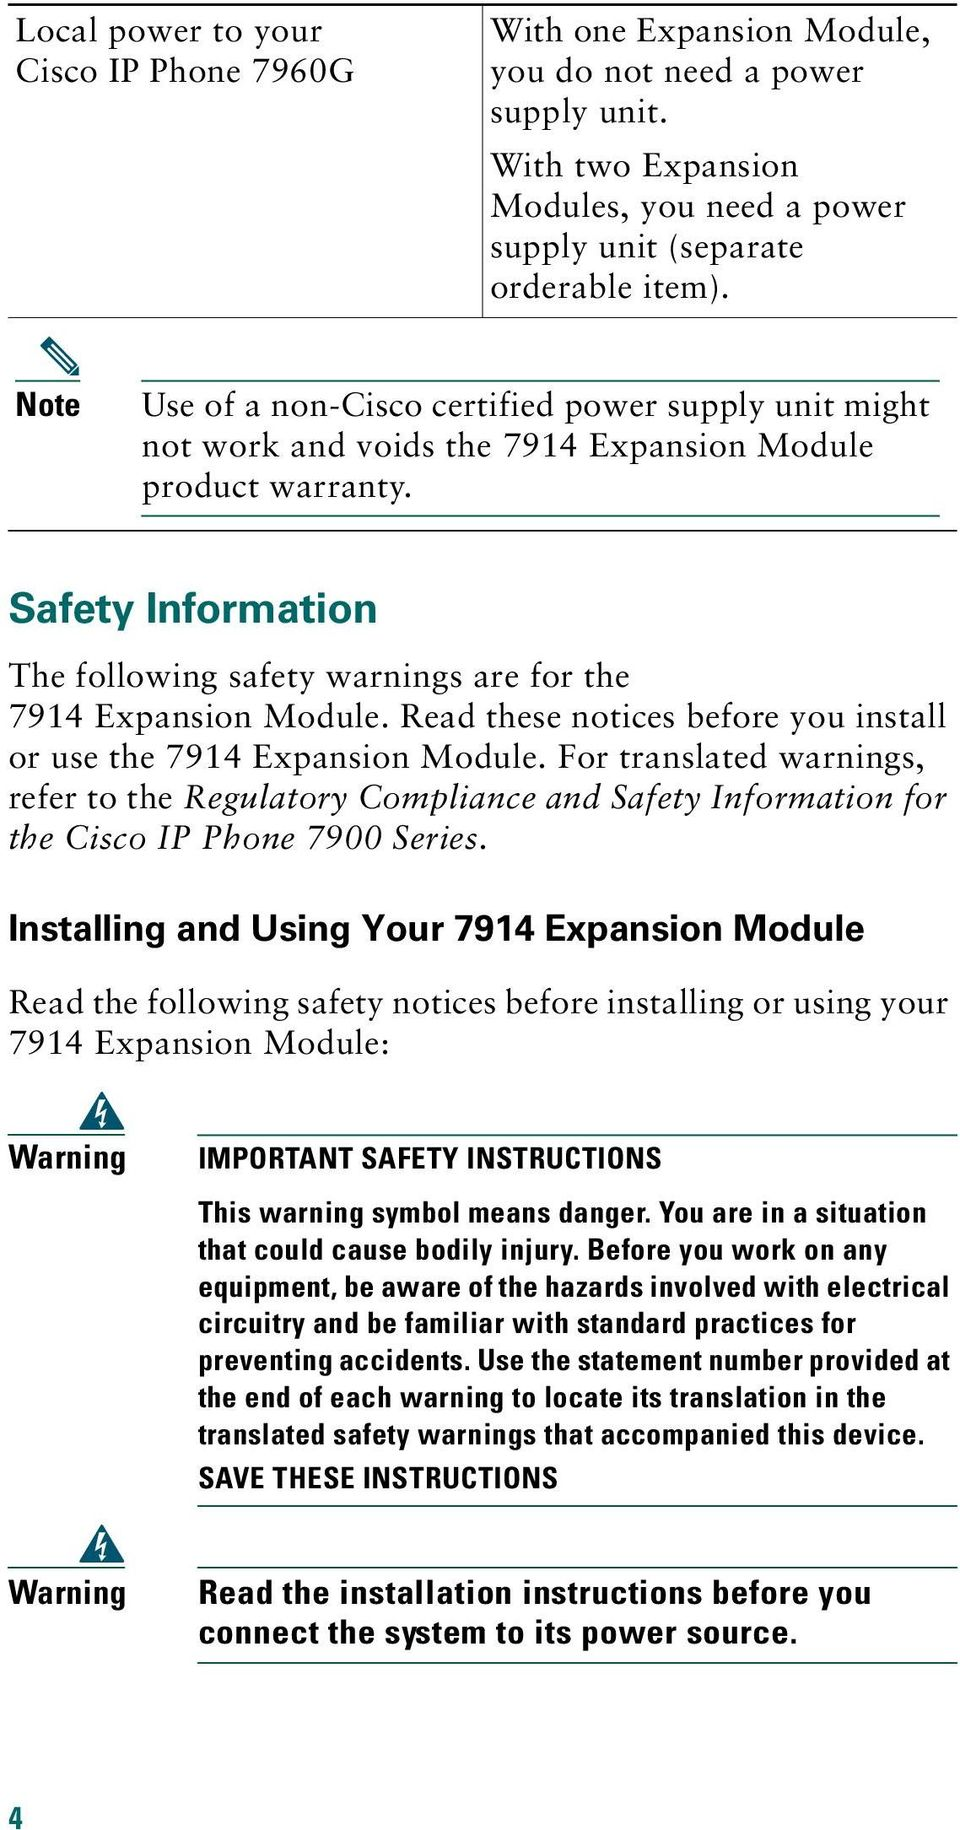 Safety Information The following safety warnings are for the 7914 Expansion Module. Read these notices before you install or use the 7914 Expansion Module.